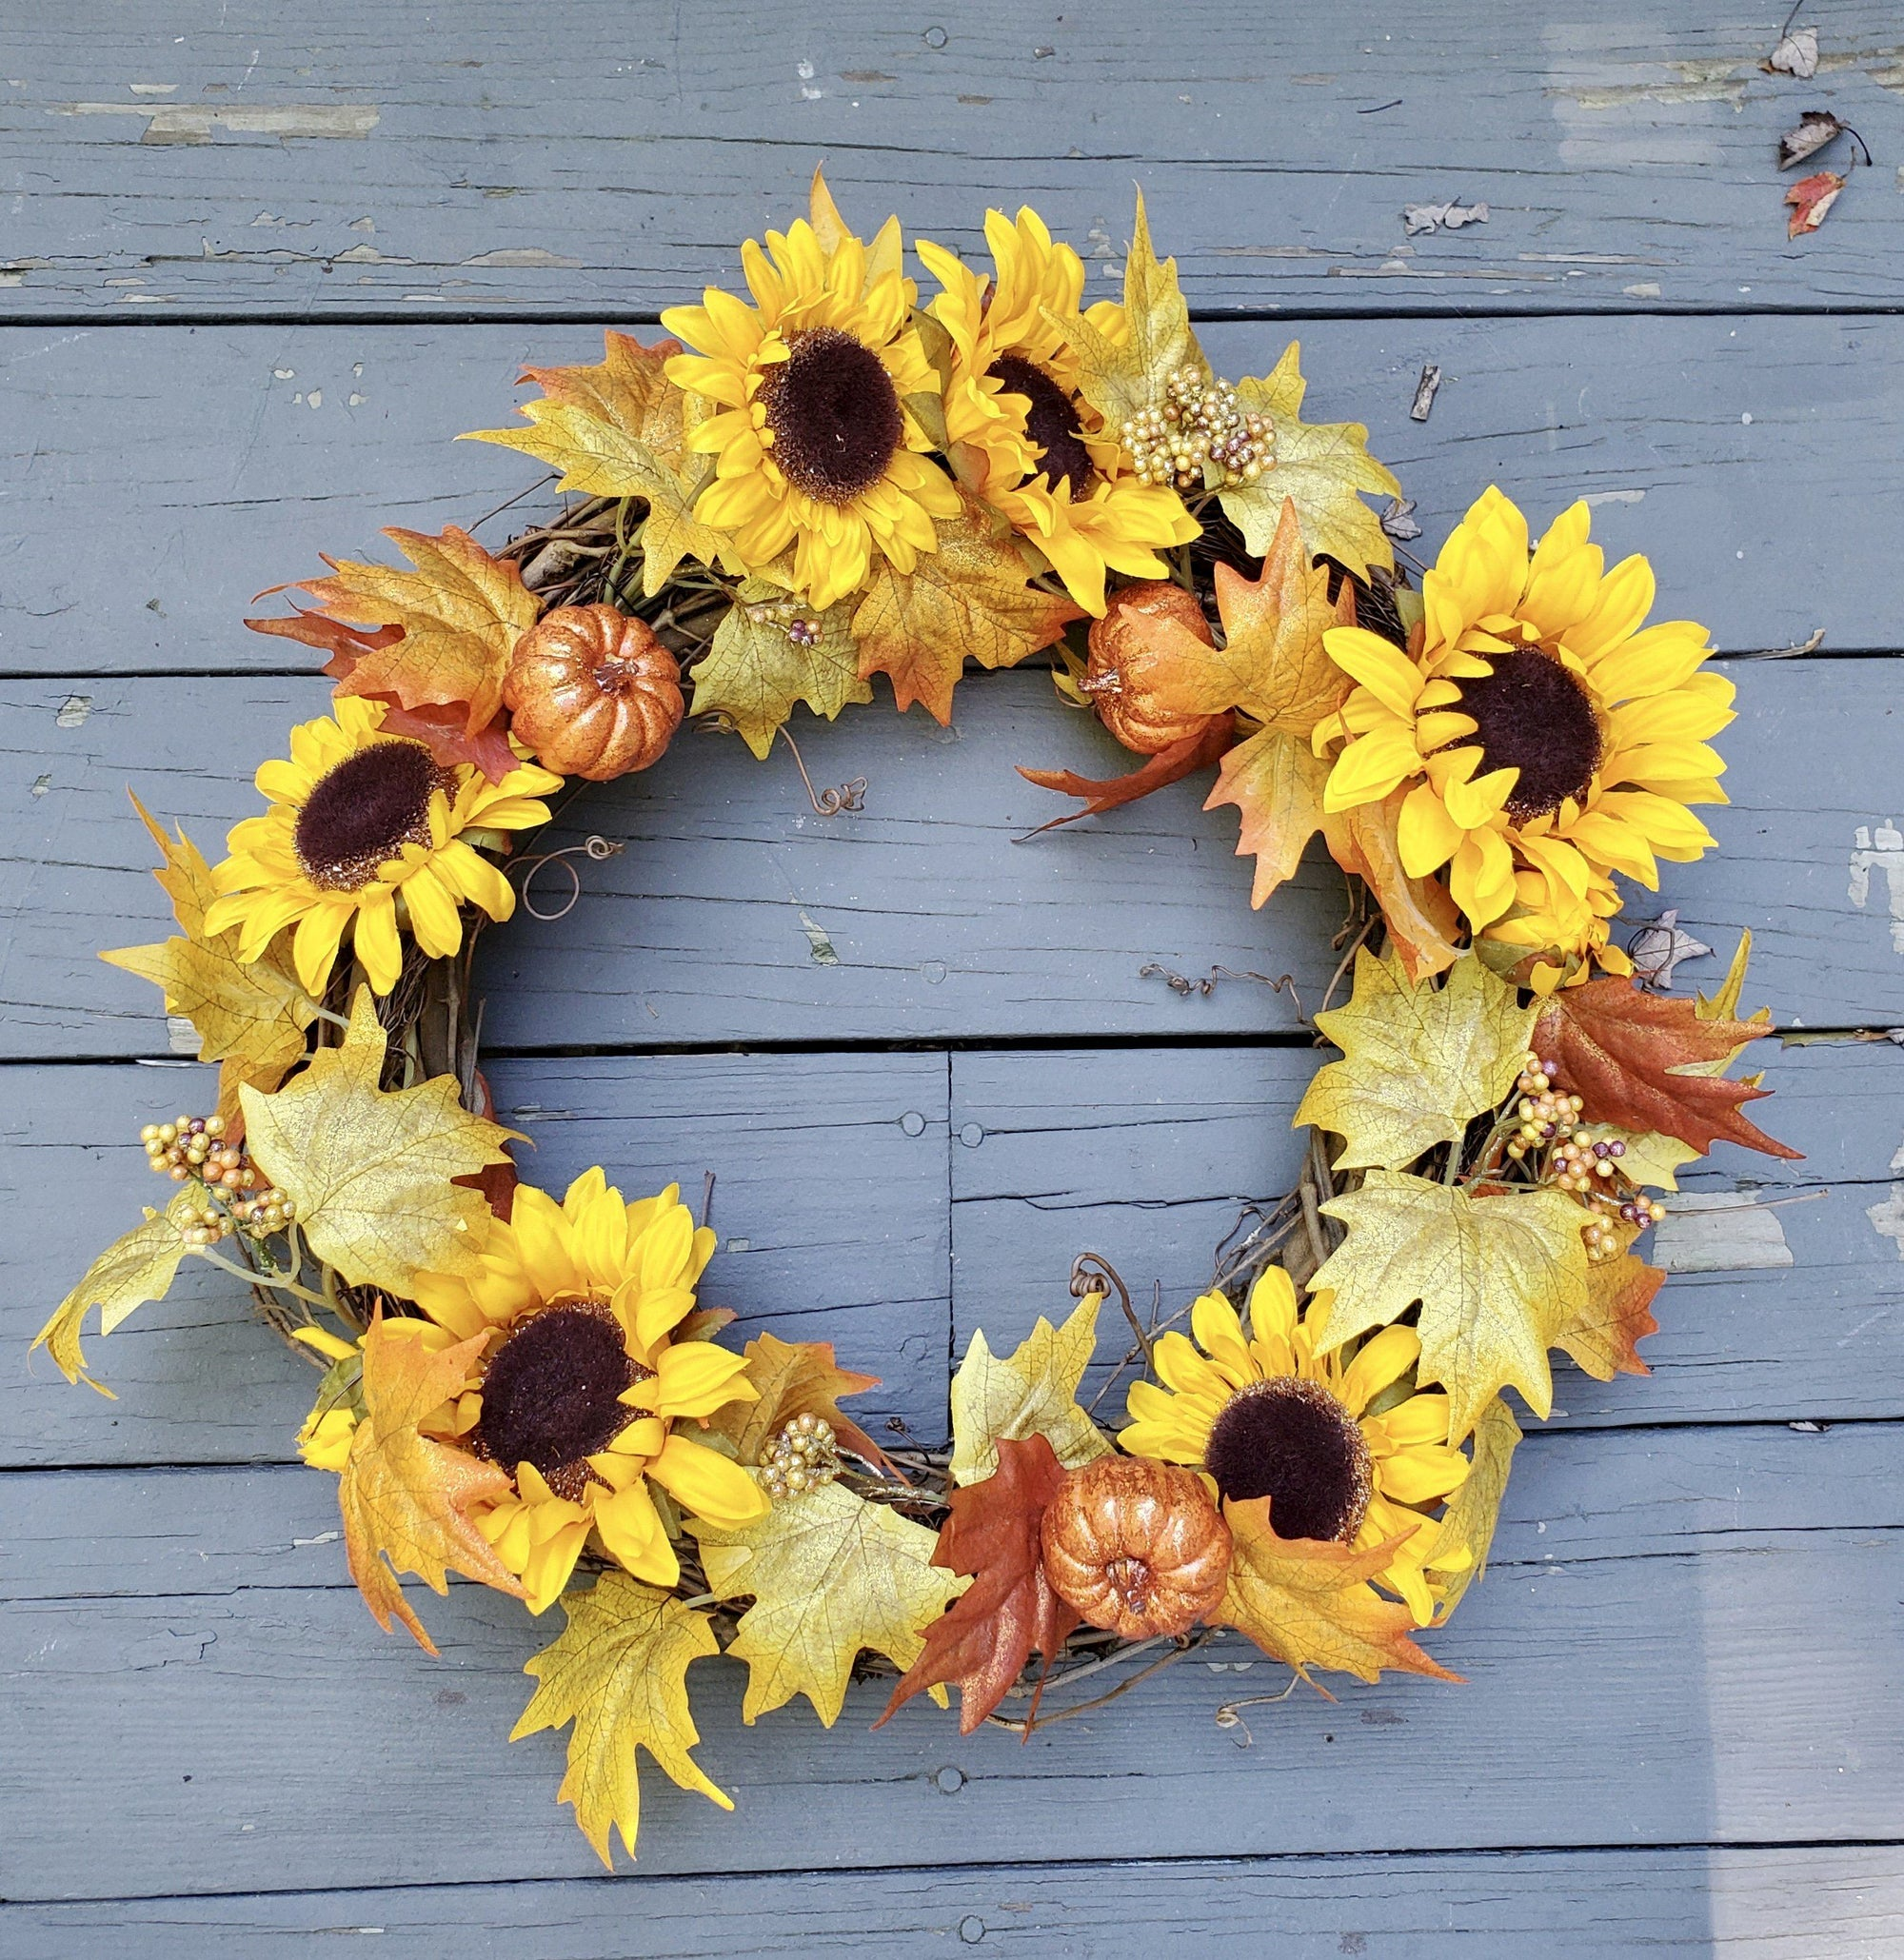 Sunflower Wreath, Fall Wreath, Fall Front Door Fall Decor A Rustic Feeling